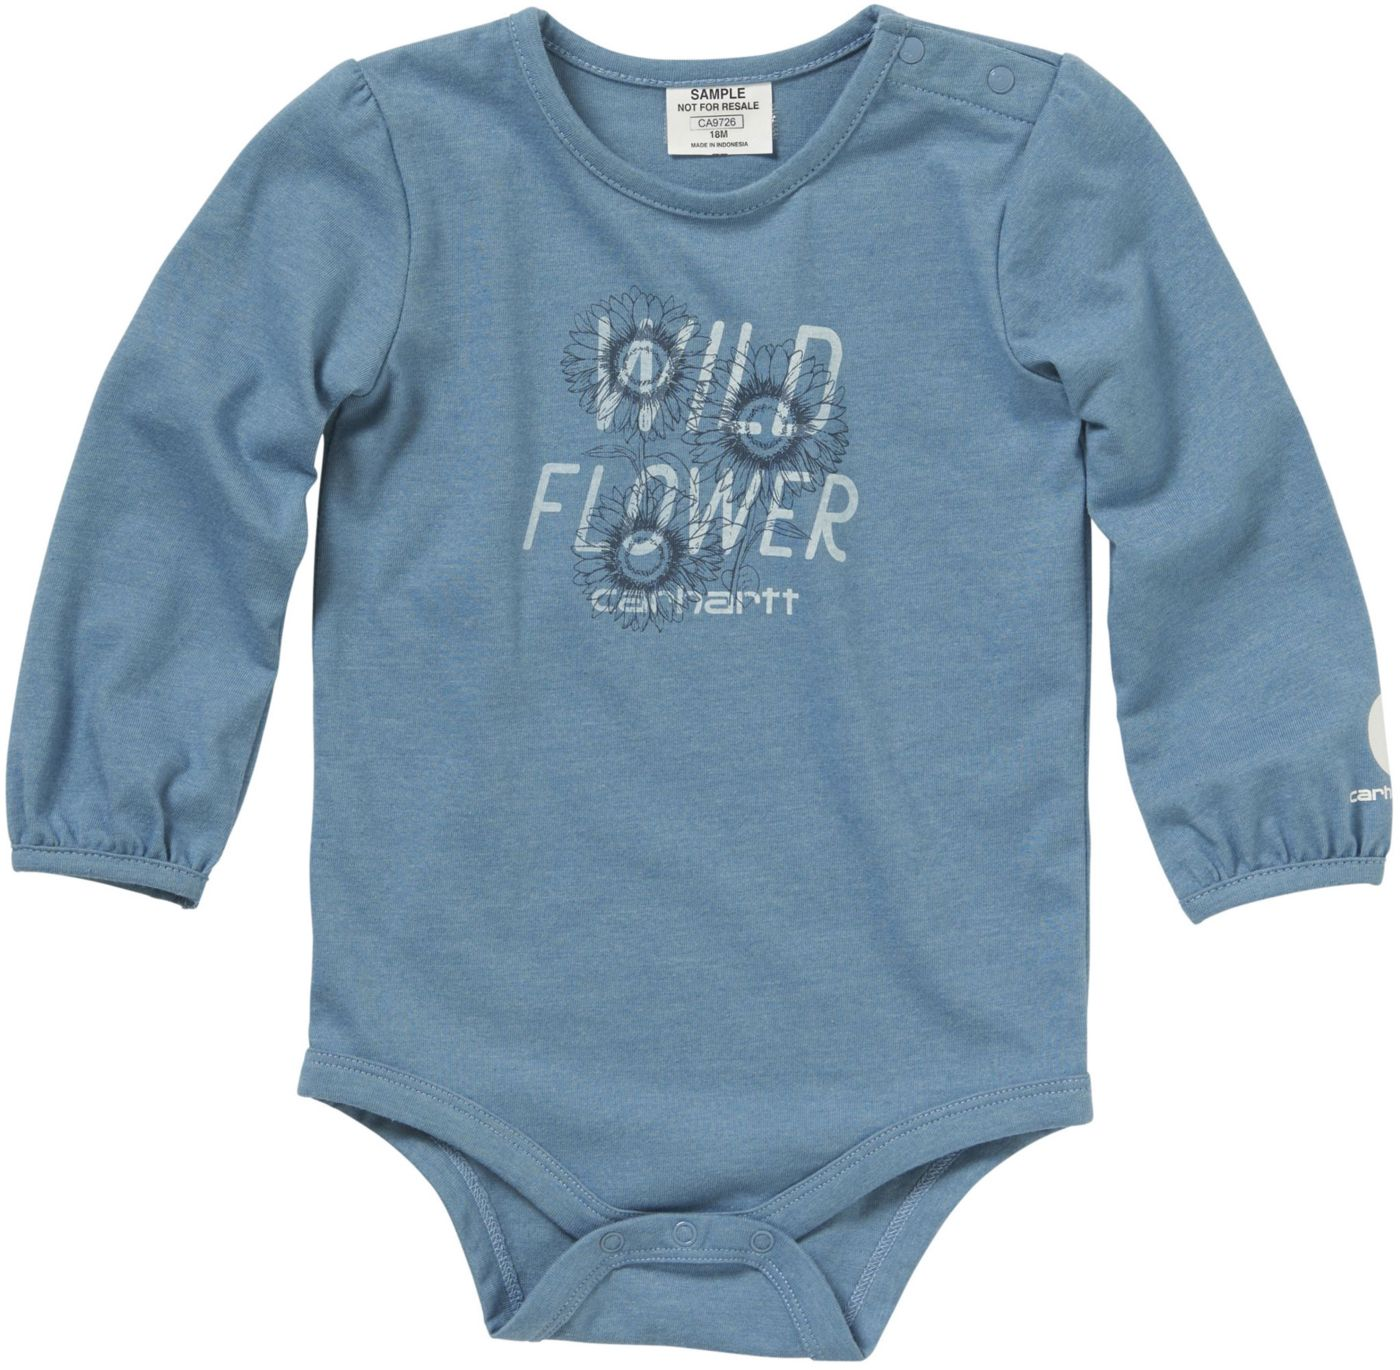 Carhartt Infant Girls' Long Sleeve Wild Flower Bodyshirt